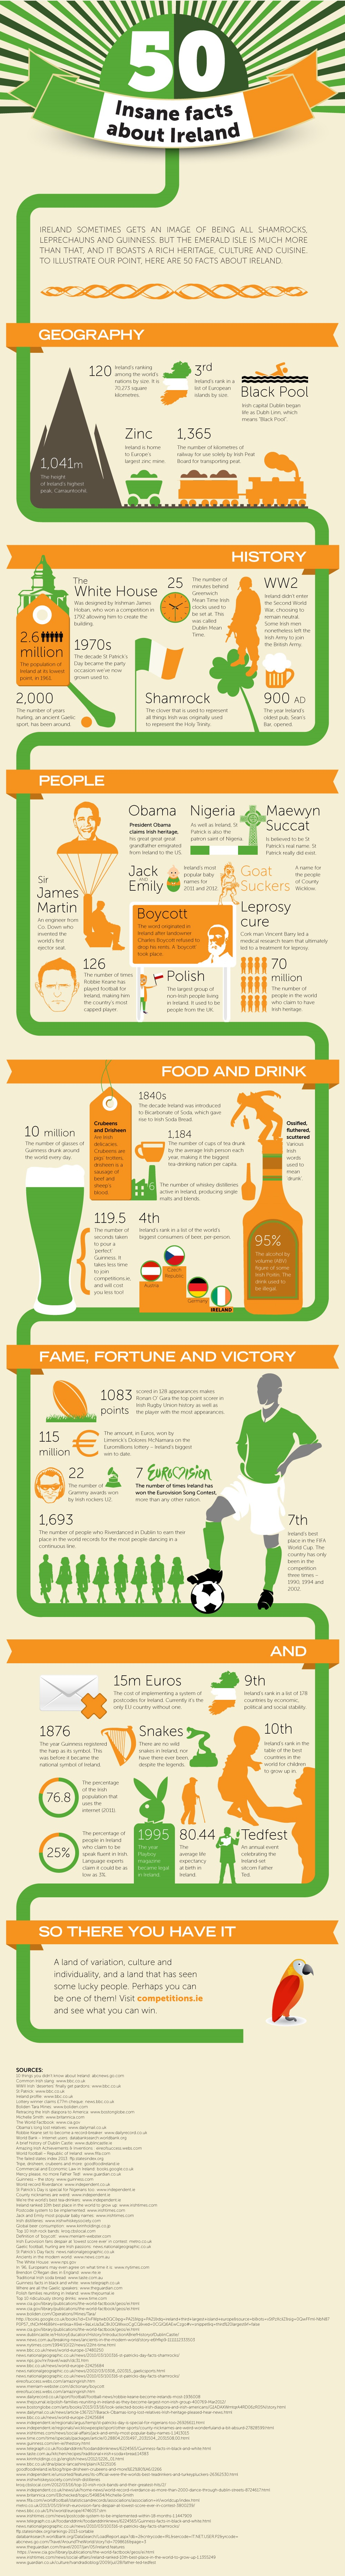 50 Insane Facts about Ireland [Infographic] image 50 INSANE FACTS IRELAND COMPS IE